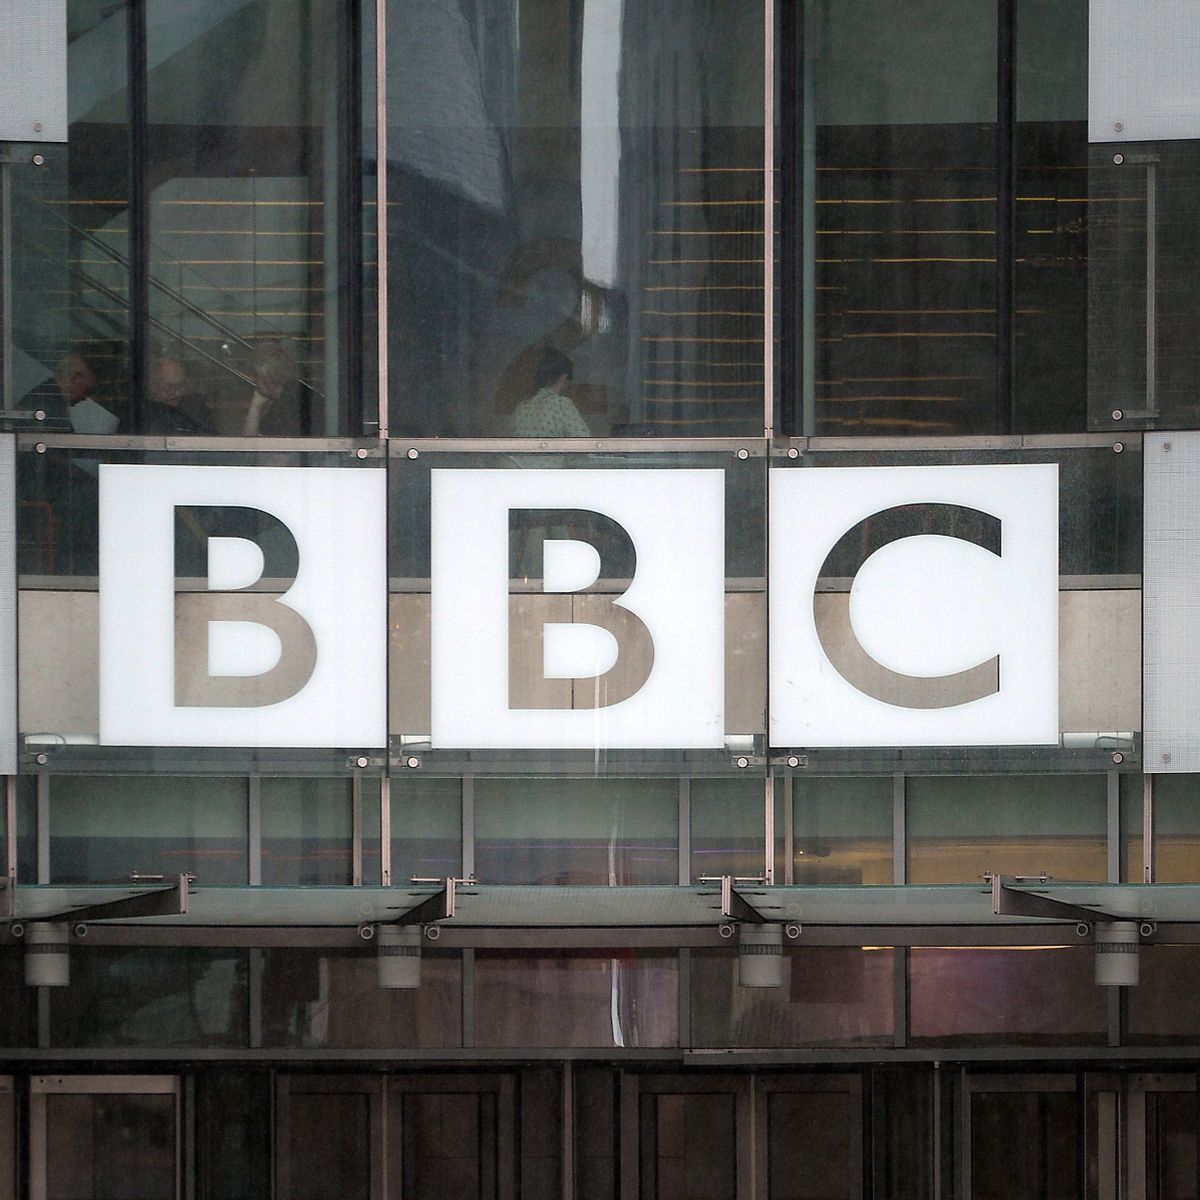 BBC Instructs News Crew To Ask Permission Before Attending LGBT Or BLM Fights